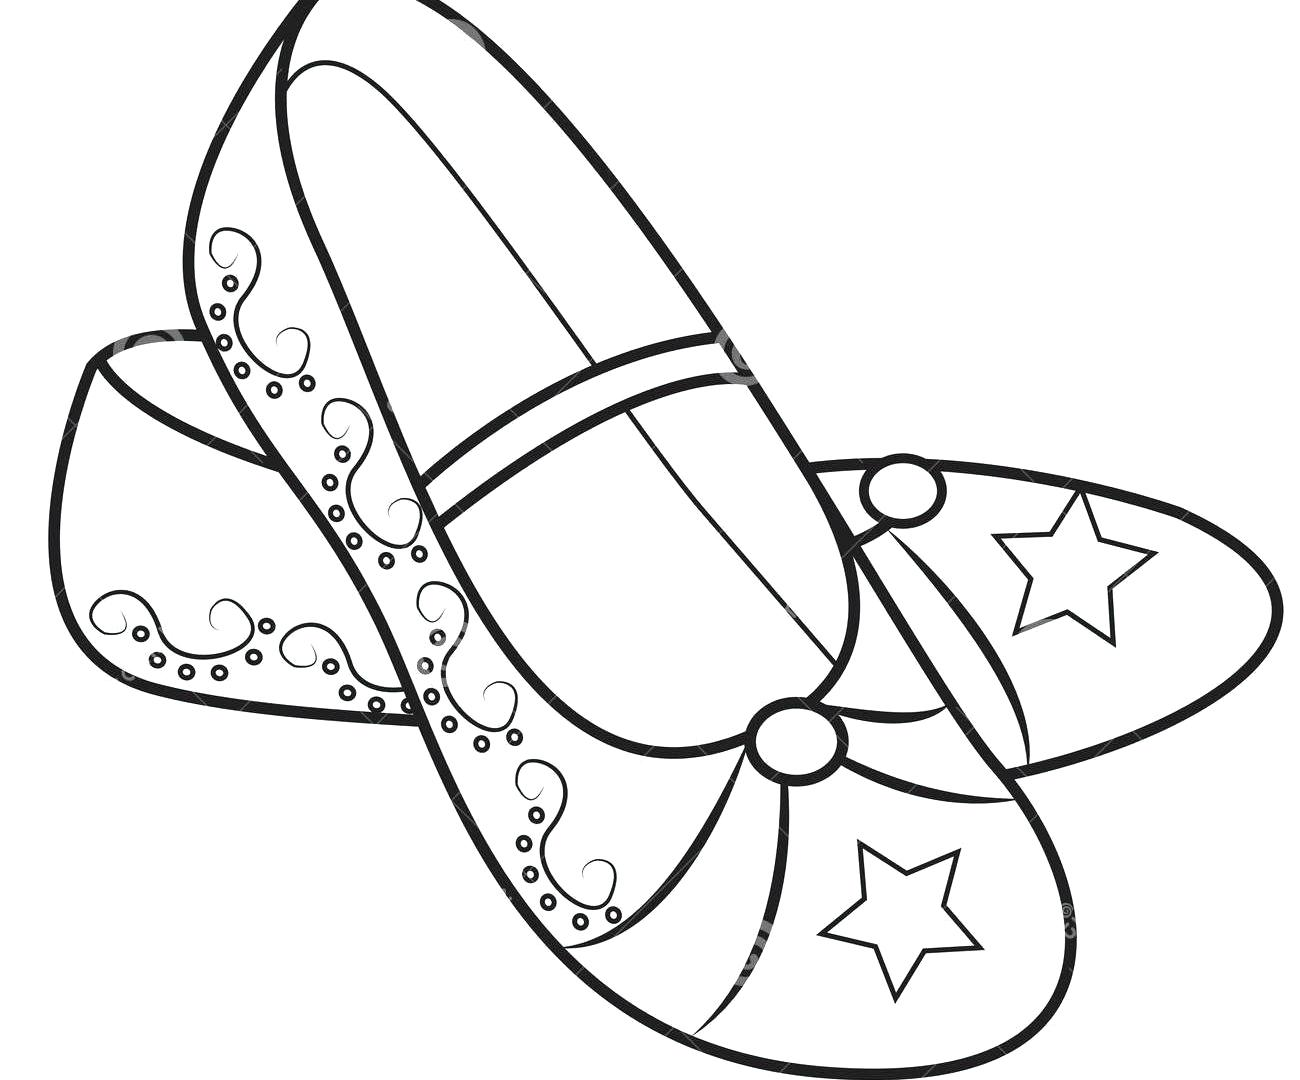 1300x1080 Coloring Page Jordan Shoes Coloring Pages. Michael Jordan Shoes